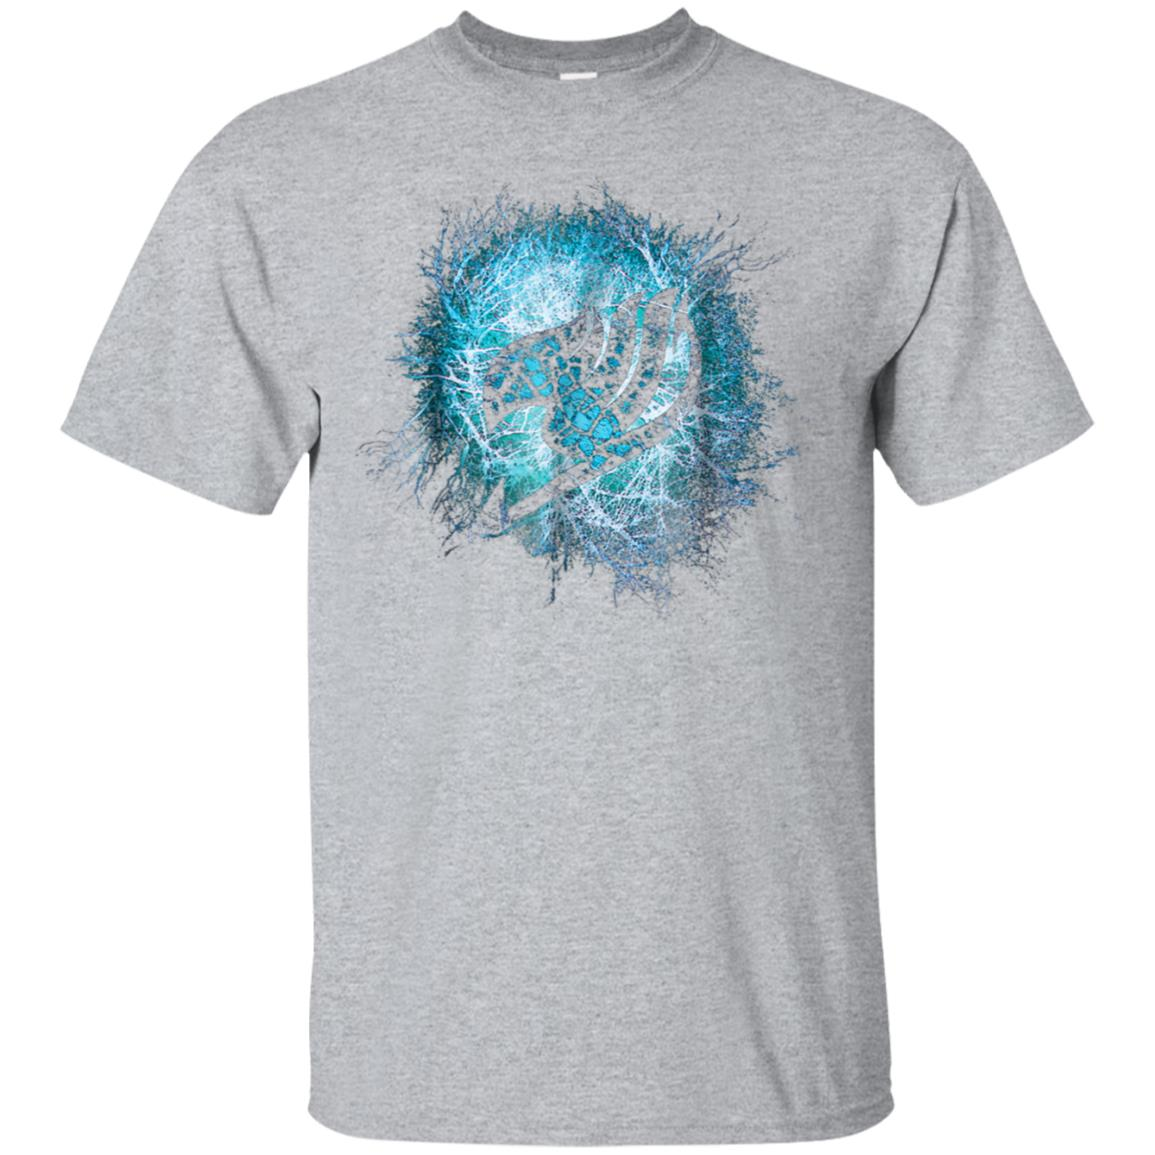 Fairy Tail Guild Symbol Tshirt 99promocode